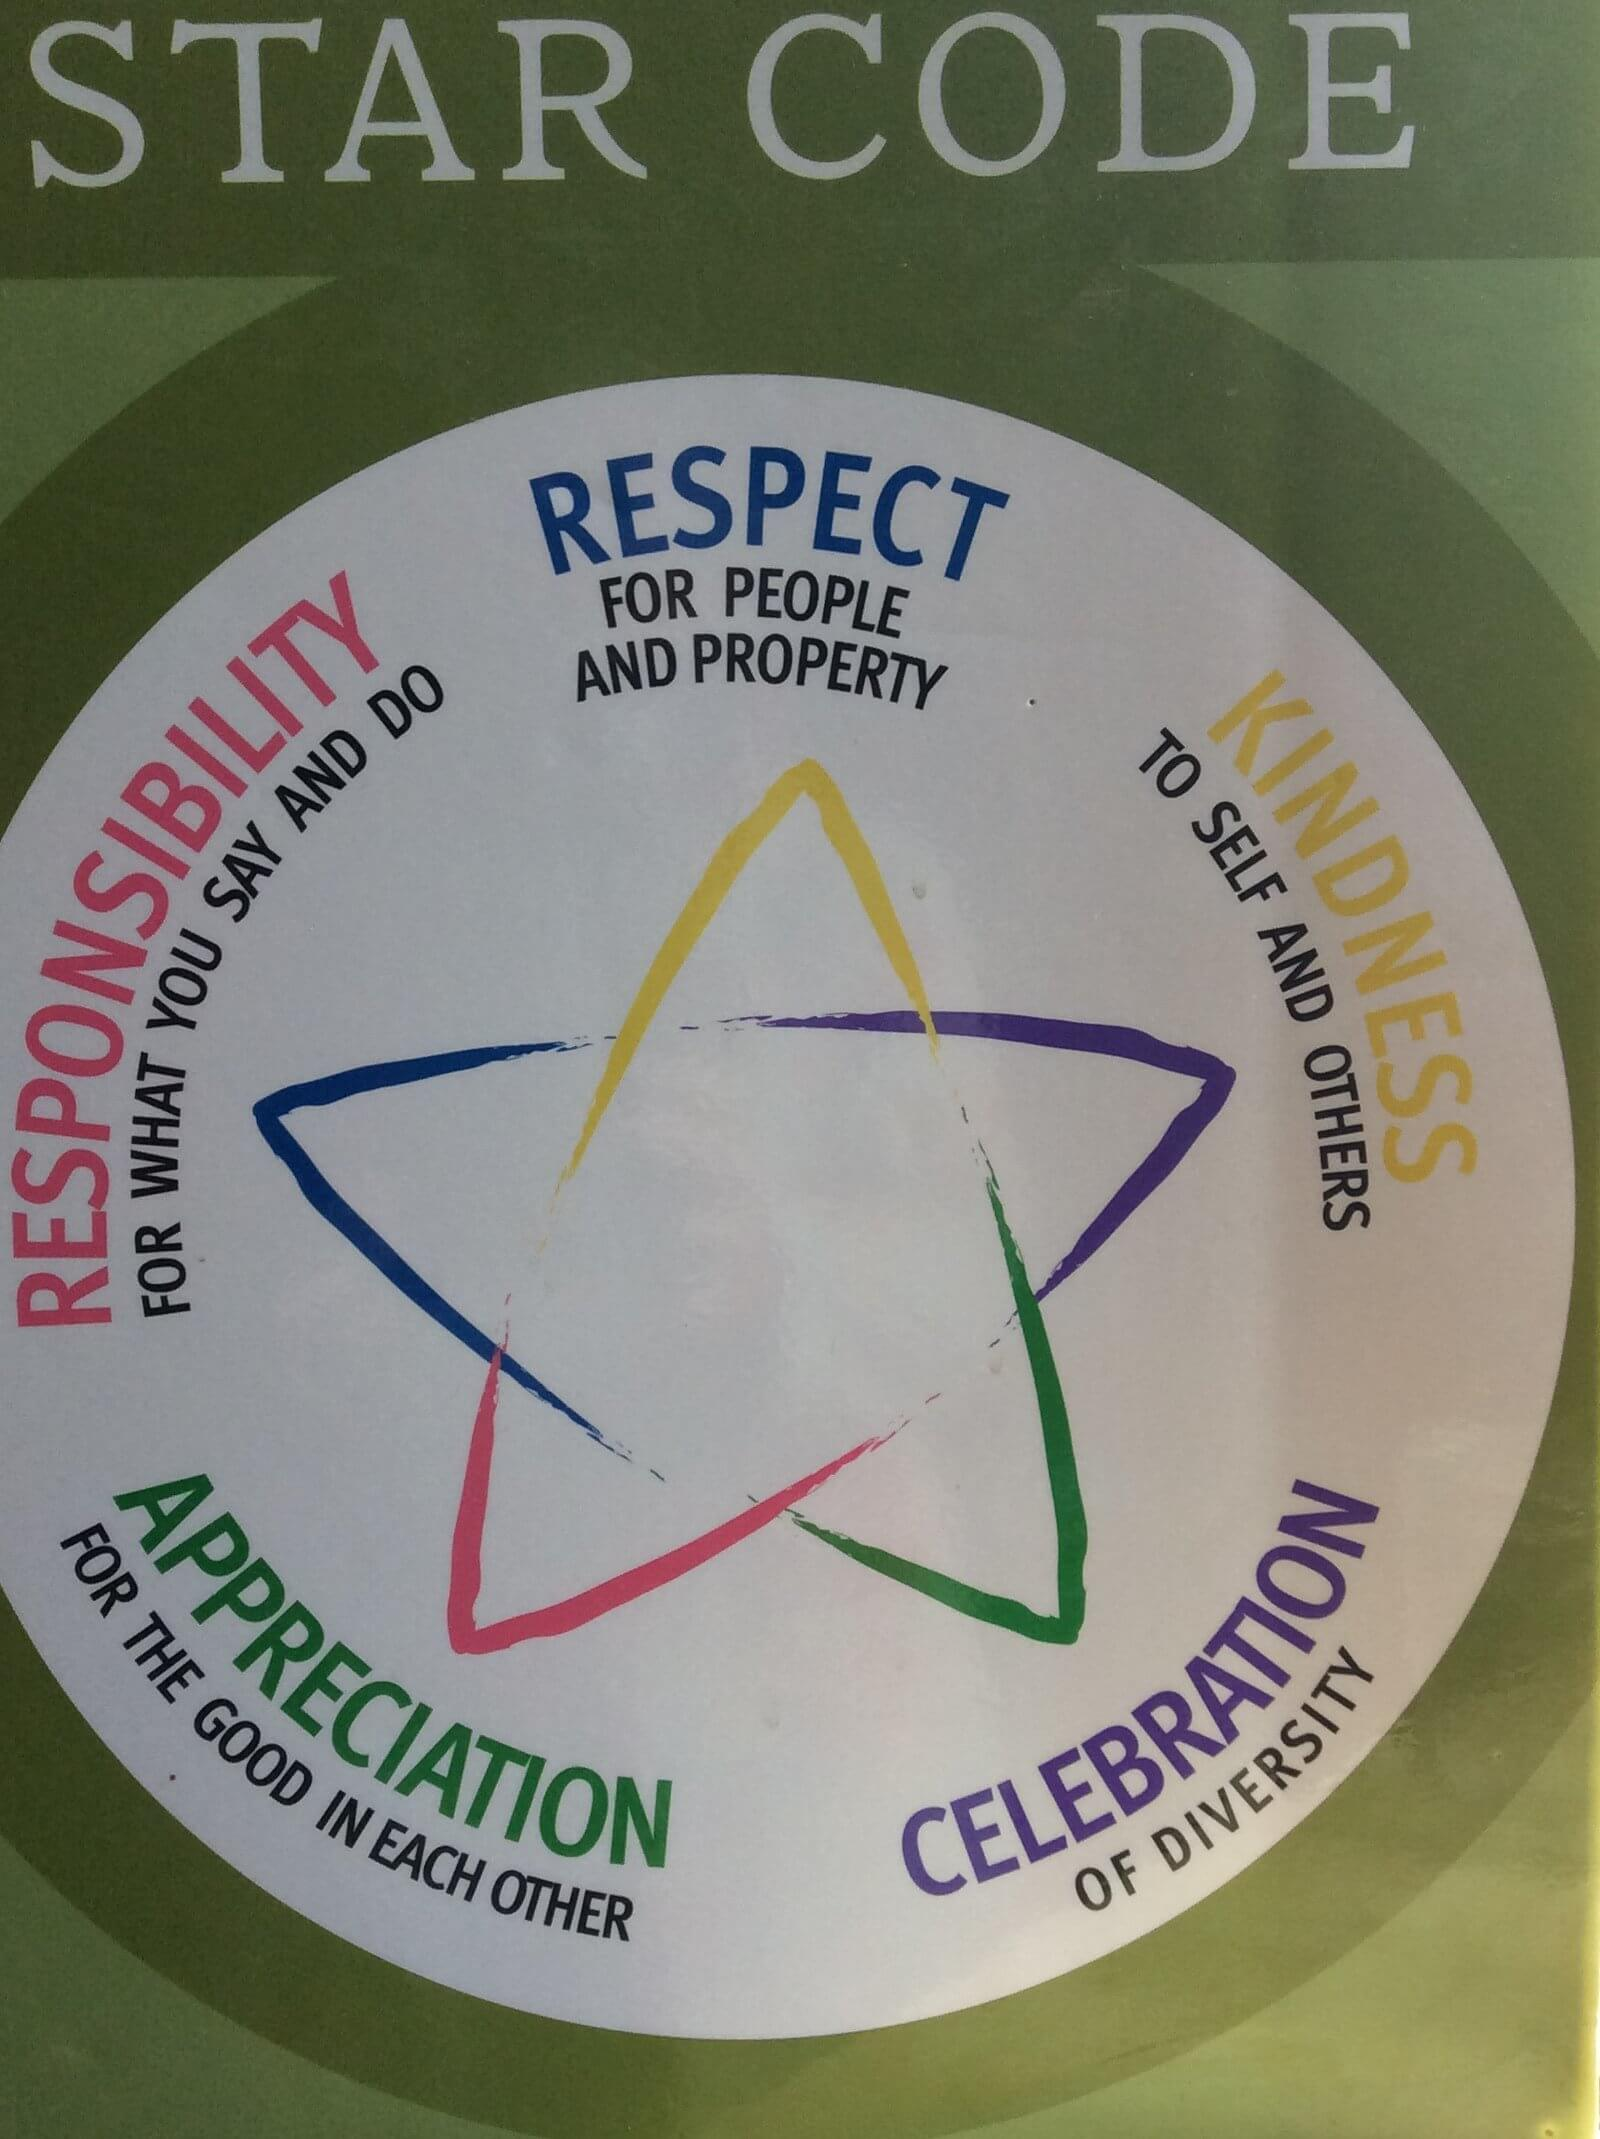 The BWS Star Code is a visual reminder to celebrate diversity and practice unity and kindness.